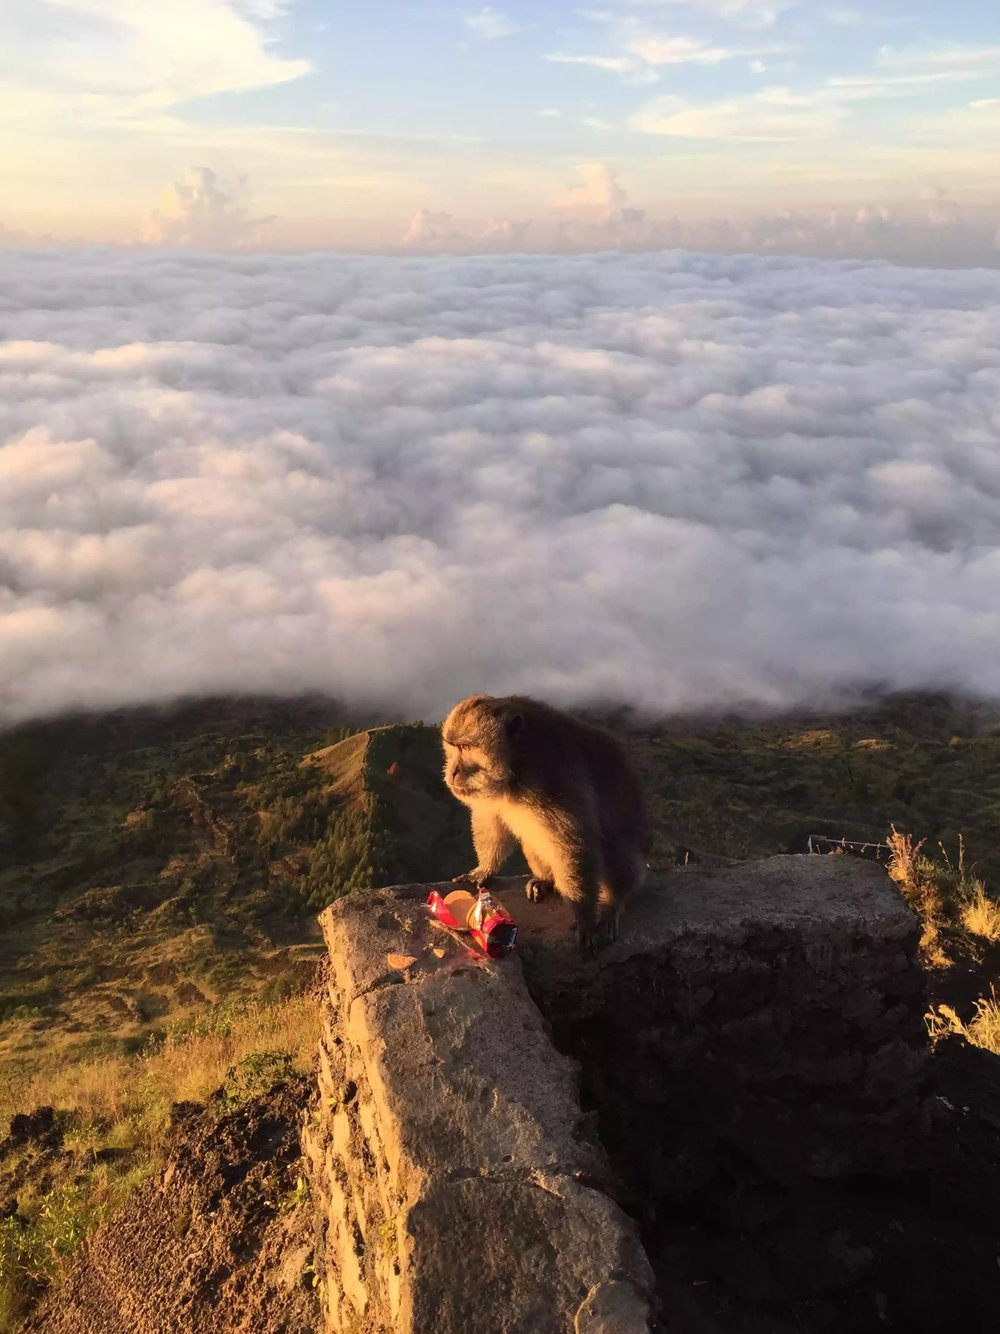 The biscuit thiefs high above the clouds